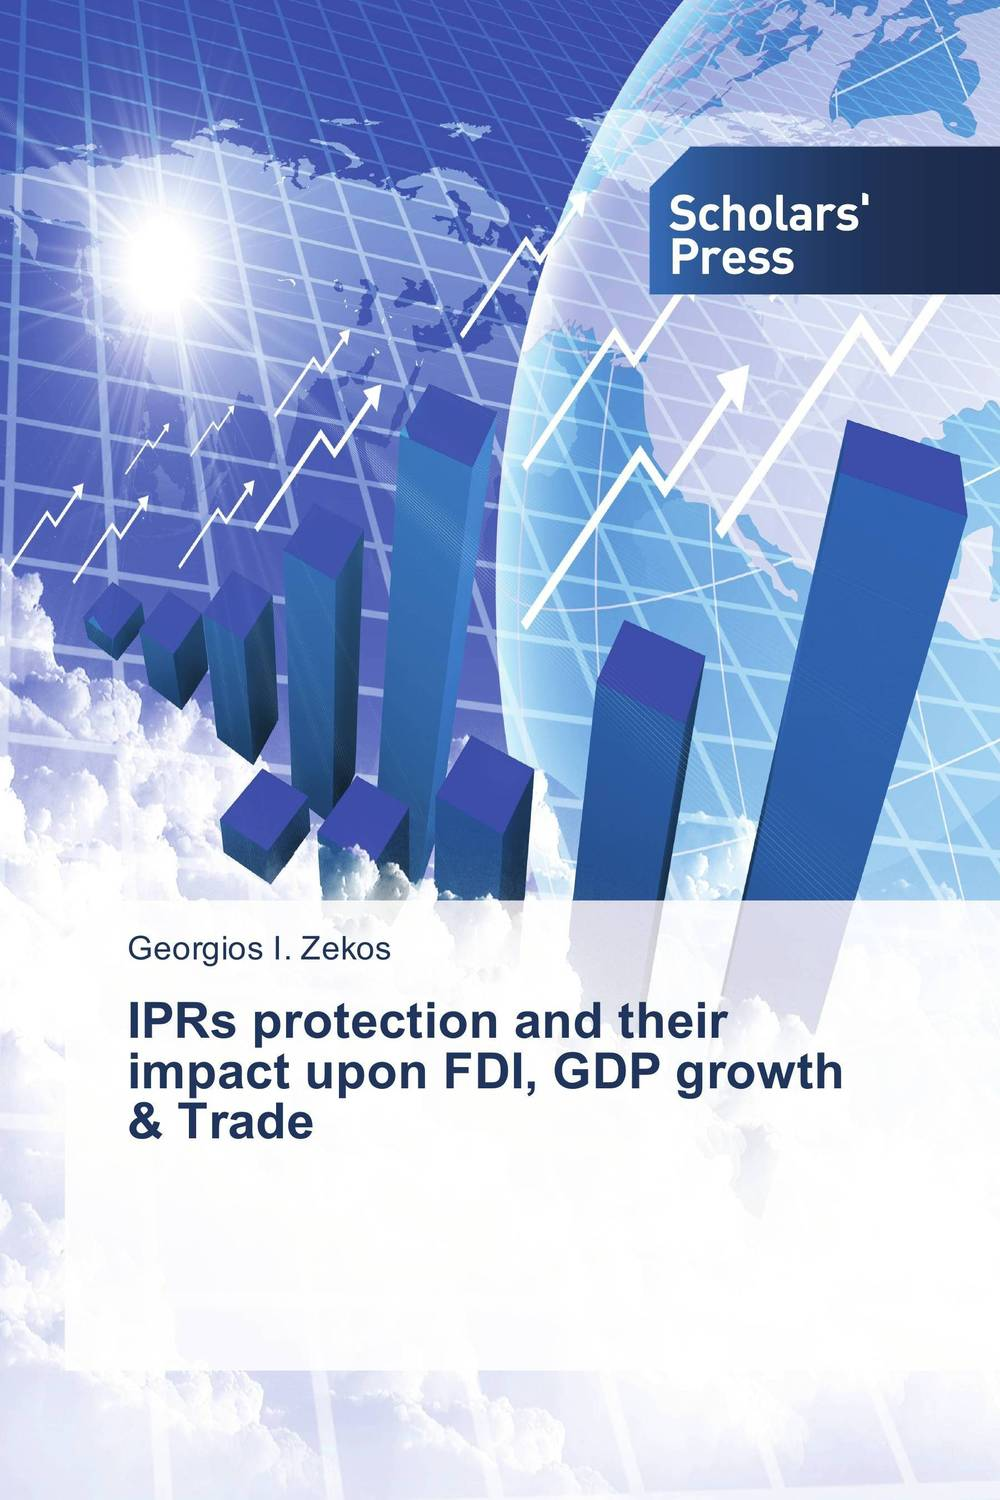 IPRs protection and their impact upon FDI, GDP growth & Trade driven to distraction